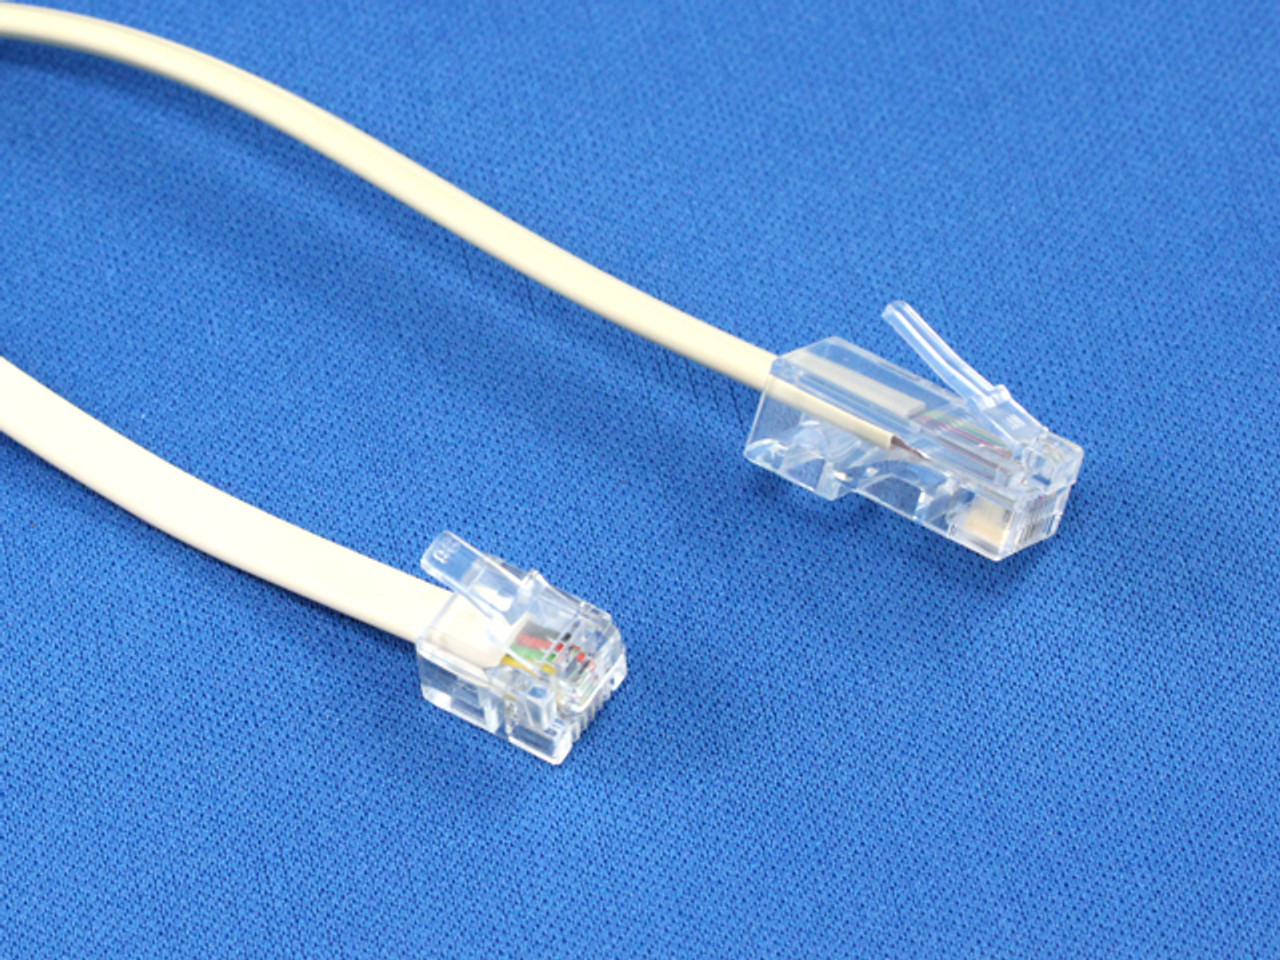 Product image for 5M RJ45/RJ12 Telephone Cable | CX Computer Superstore